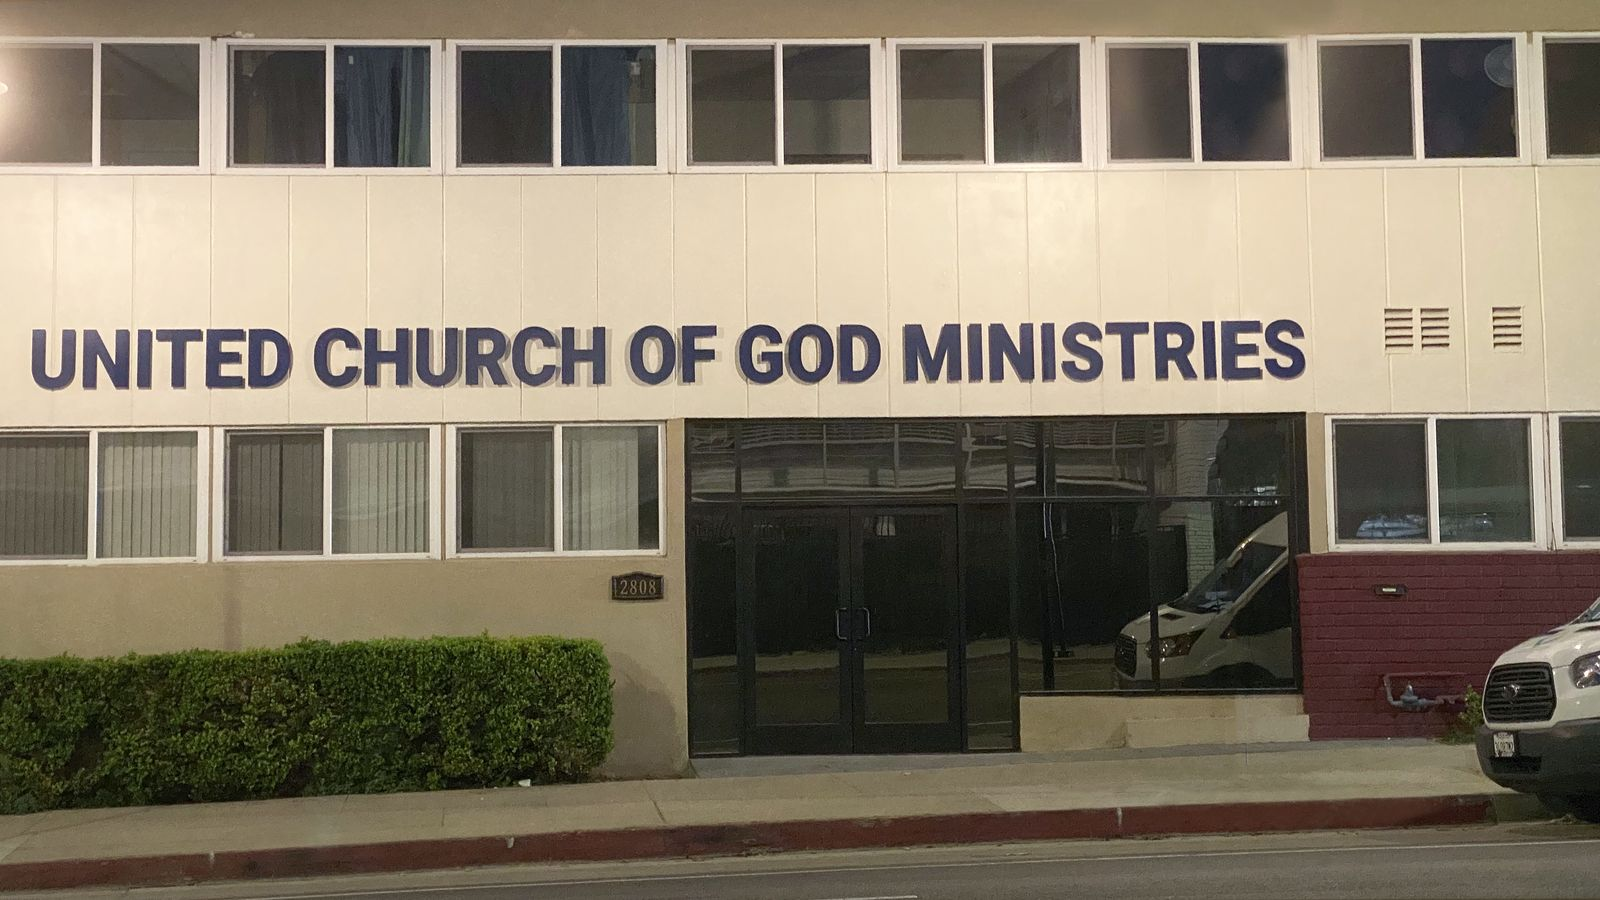 United Church of God Ministries 3d metal sign in dark blue made of aluminum for the church organization exterior branding